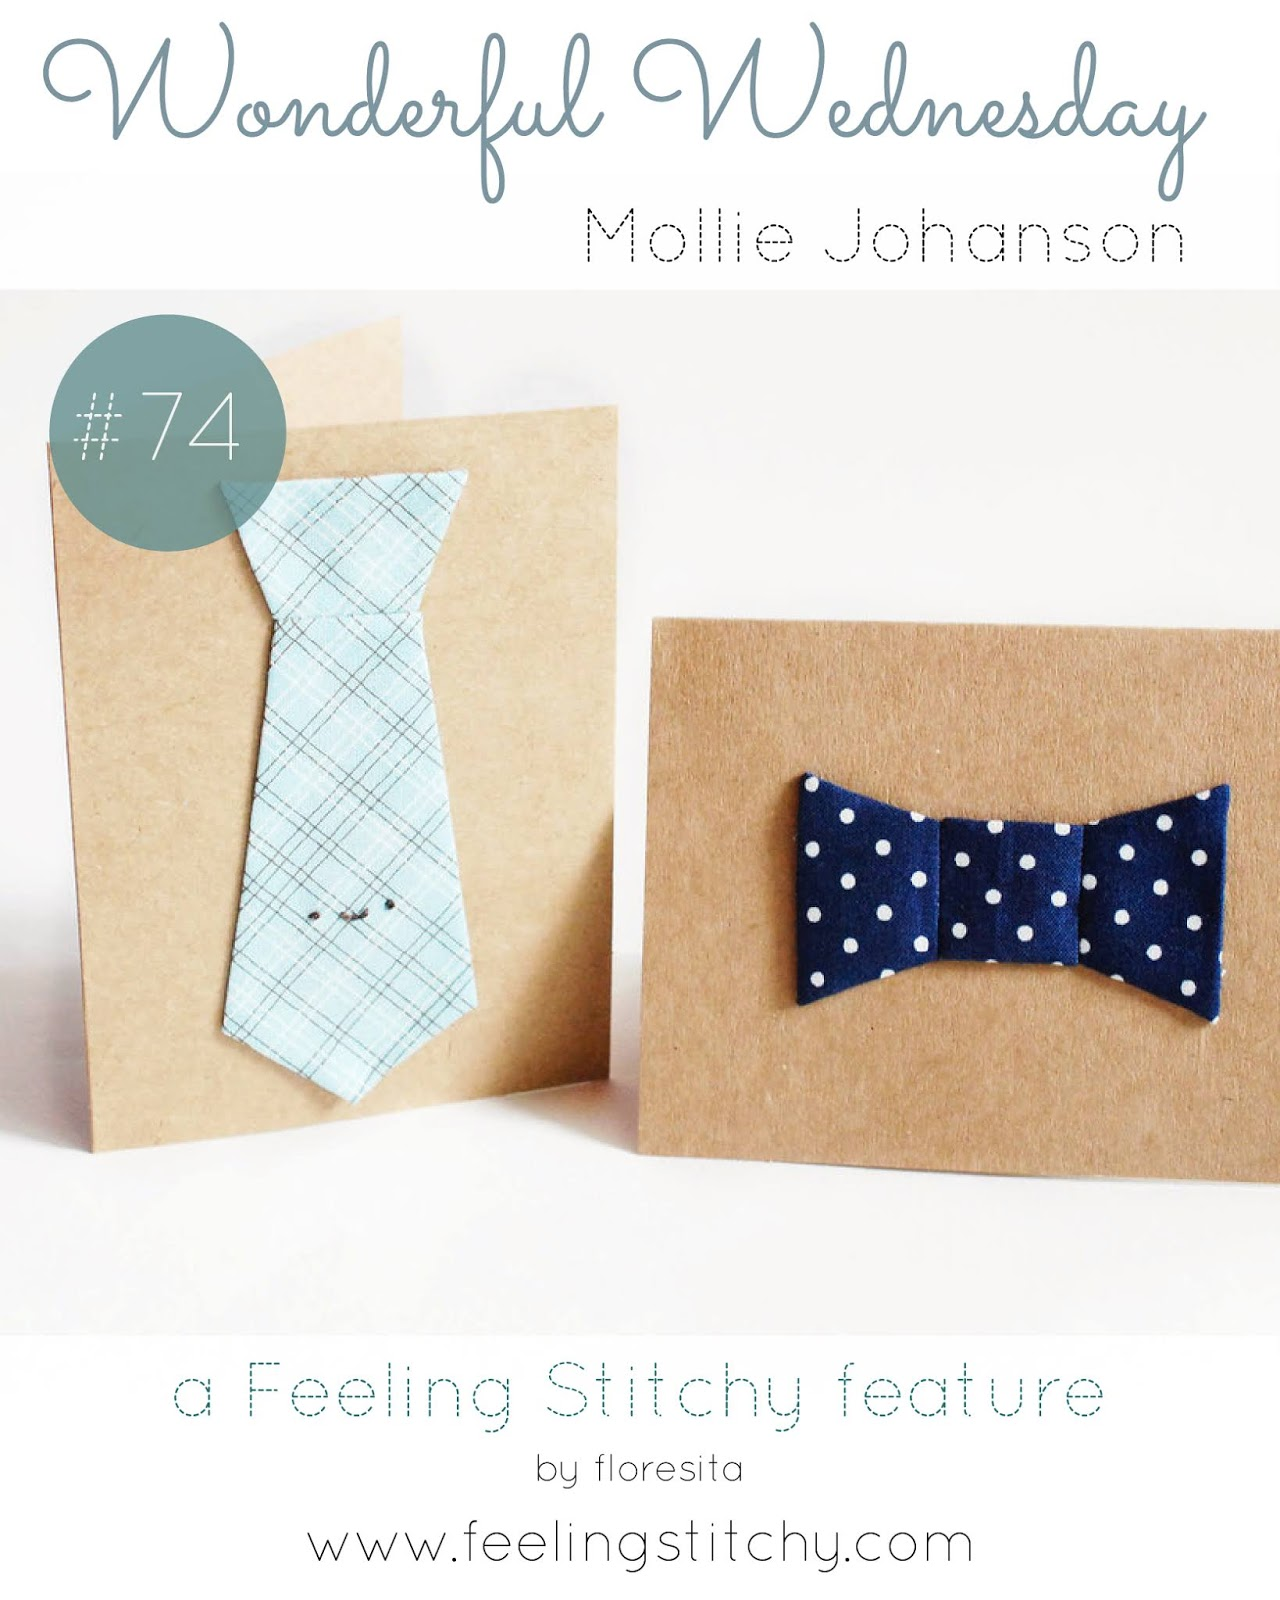 Wonderful Wednesday 74 - Mollie Johanson EPP Ties pattern as featured by floresita on Feeling Stitchy